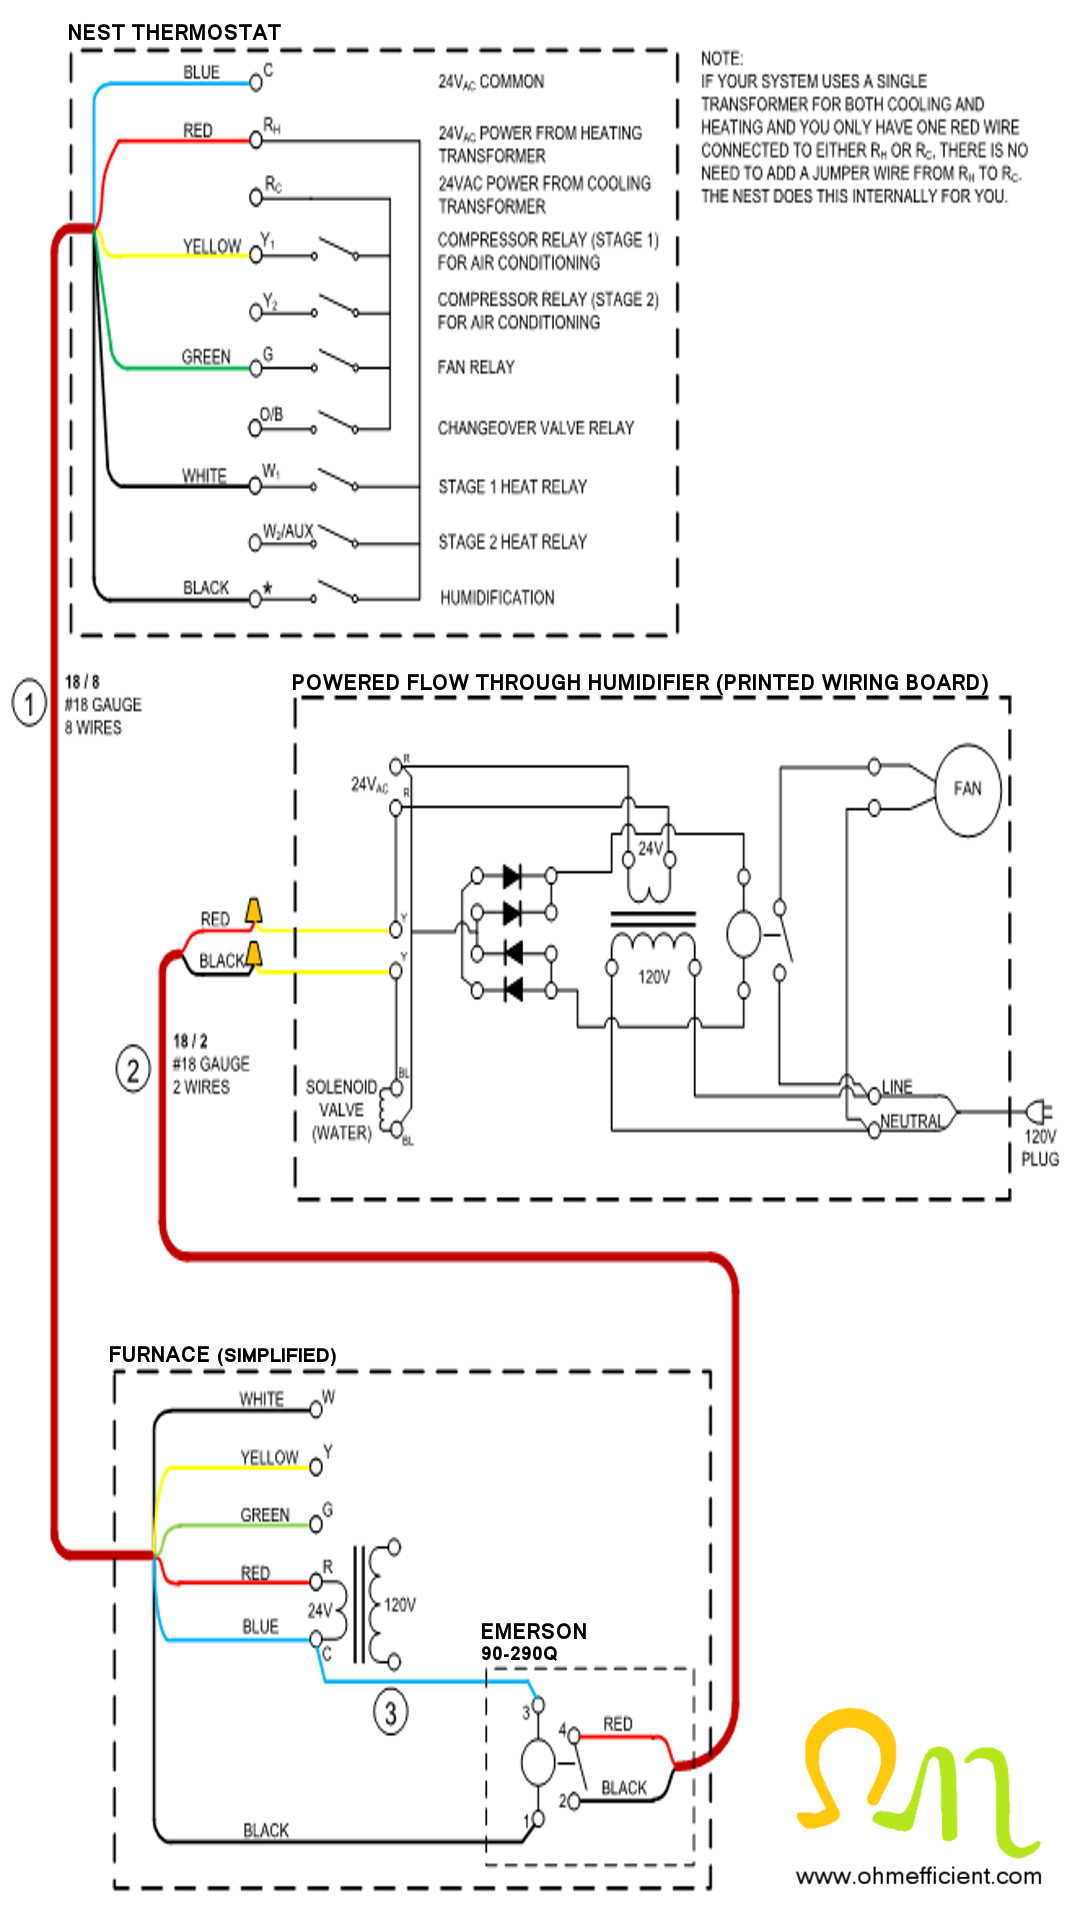 Wiring Diagram For Nest Thermostat With Humidifier - Wiring Diagrams - Nest 2Nd Generation Wiring Diagram